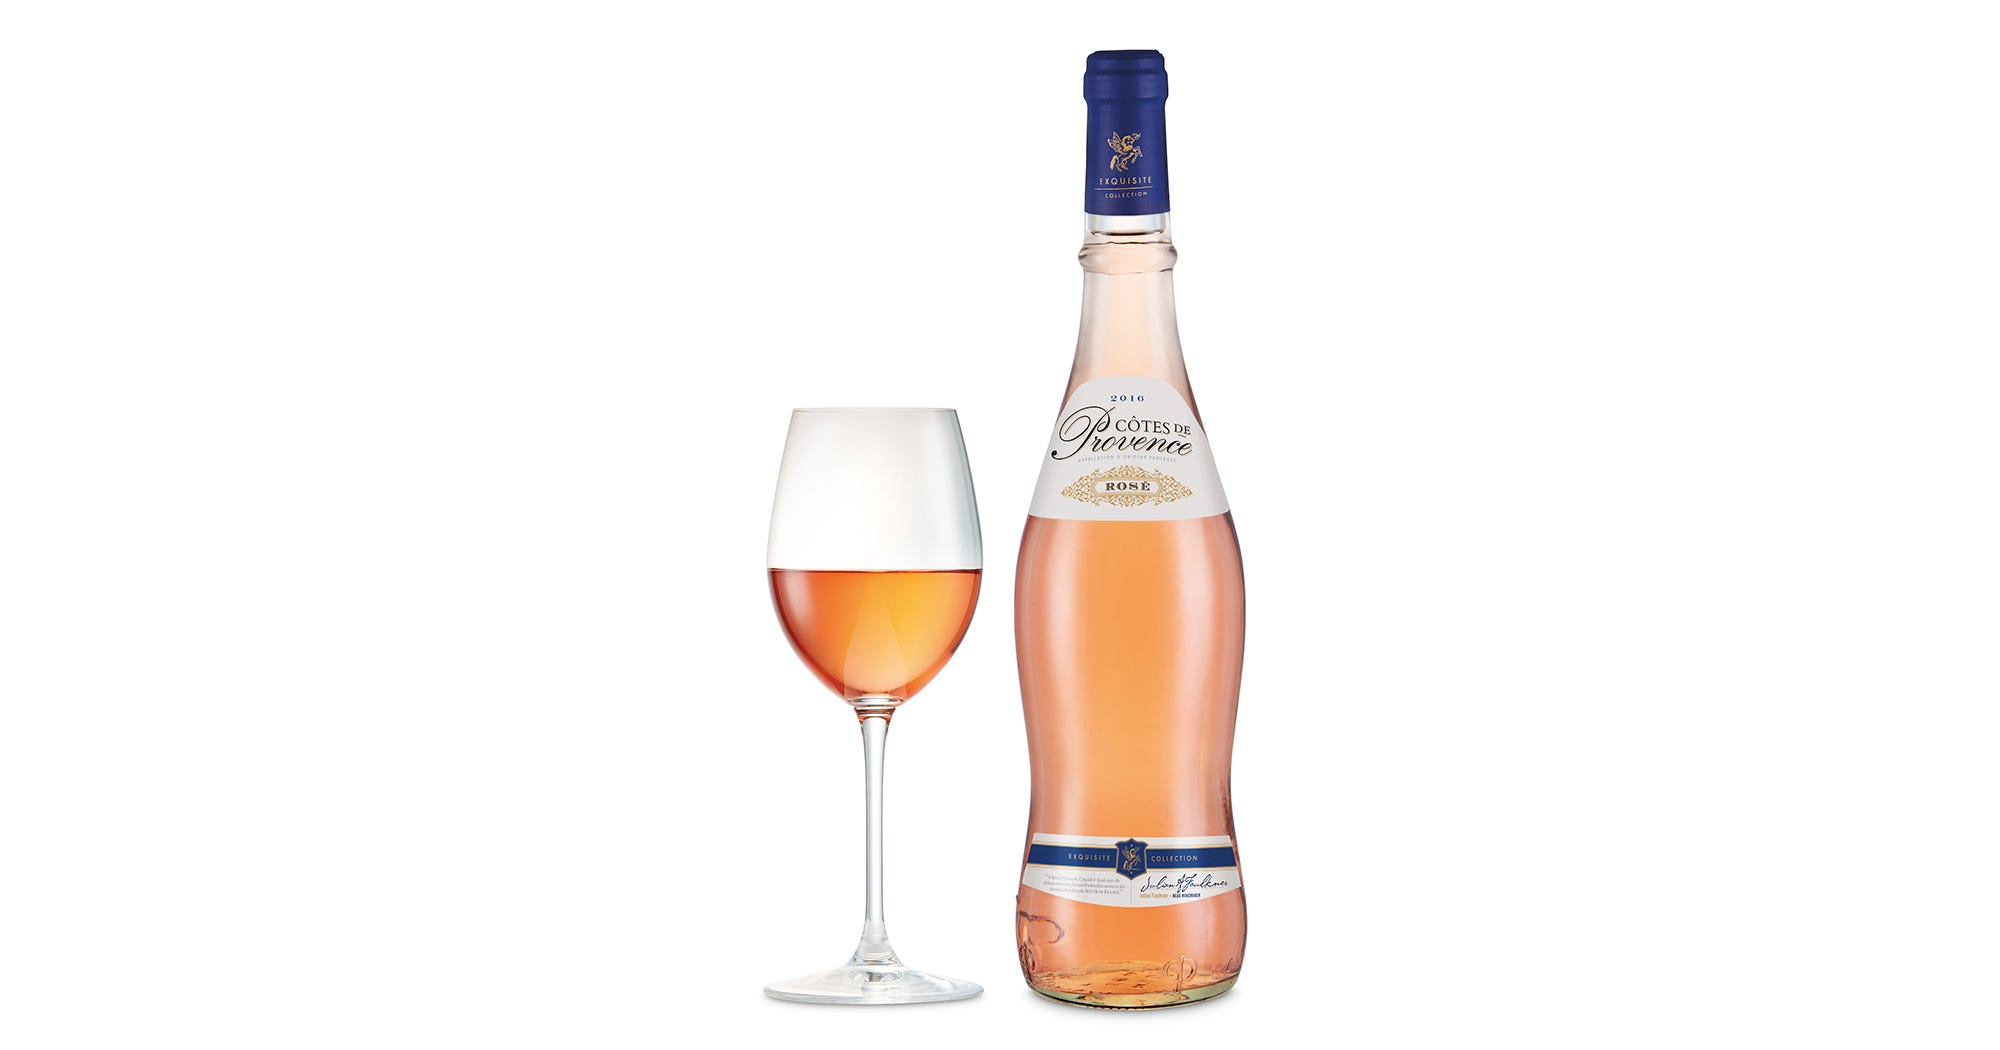 Aldi rose cheap wine taste test price comparison for Best tasting cheap wine